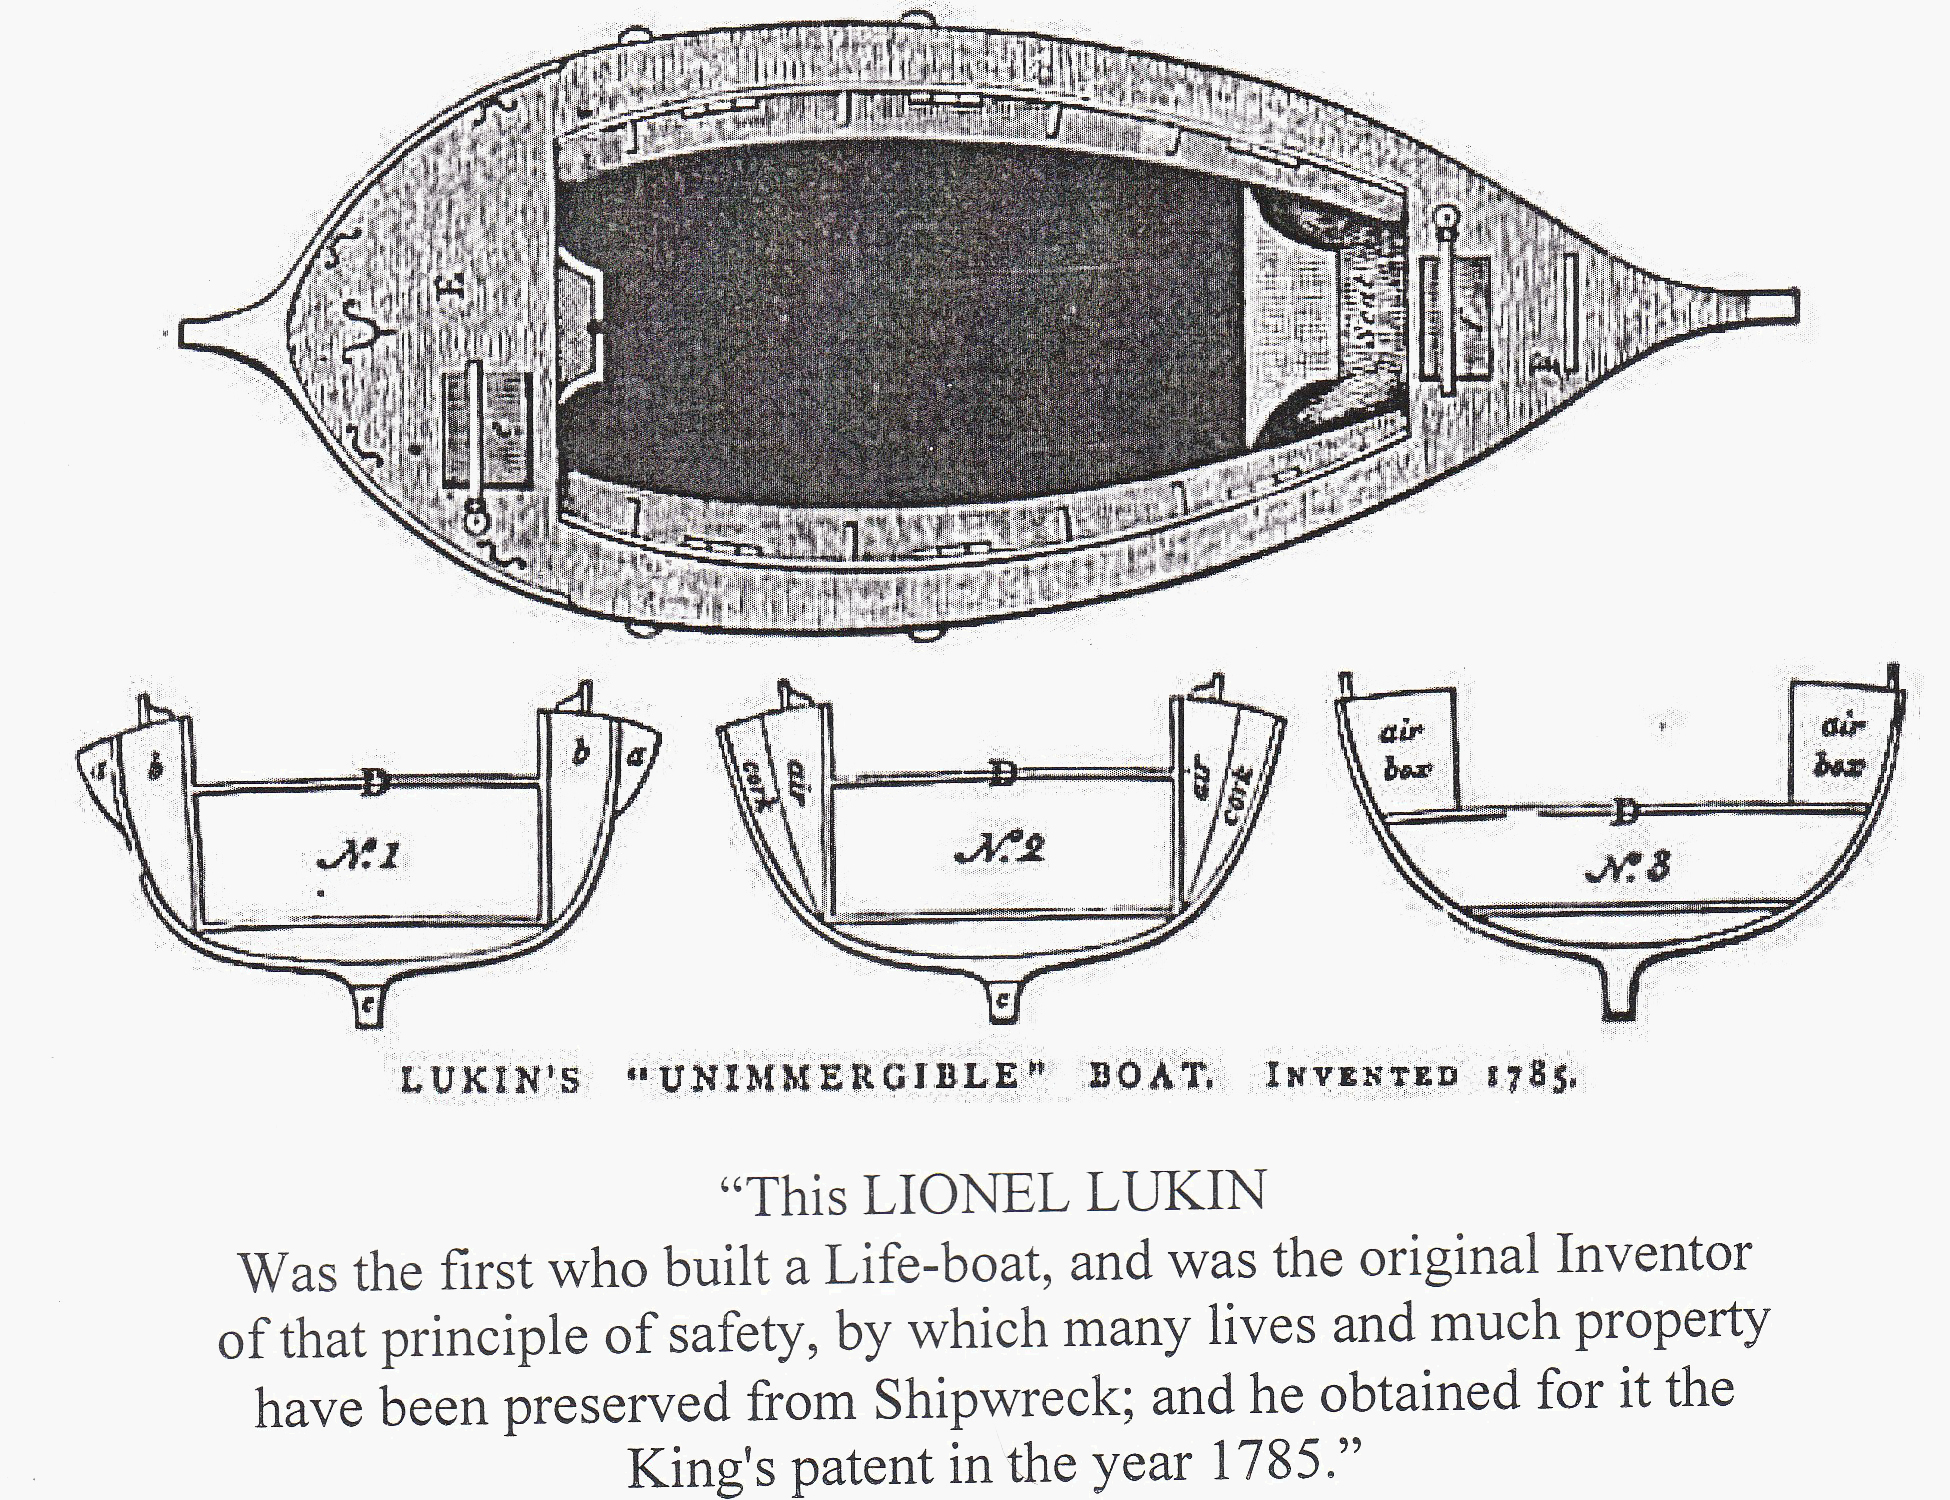 People's Plaque candidate Lionel Lukin (1742-834), inventor of the 'unimmergible' lifeboat, who lived on Long Acre.